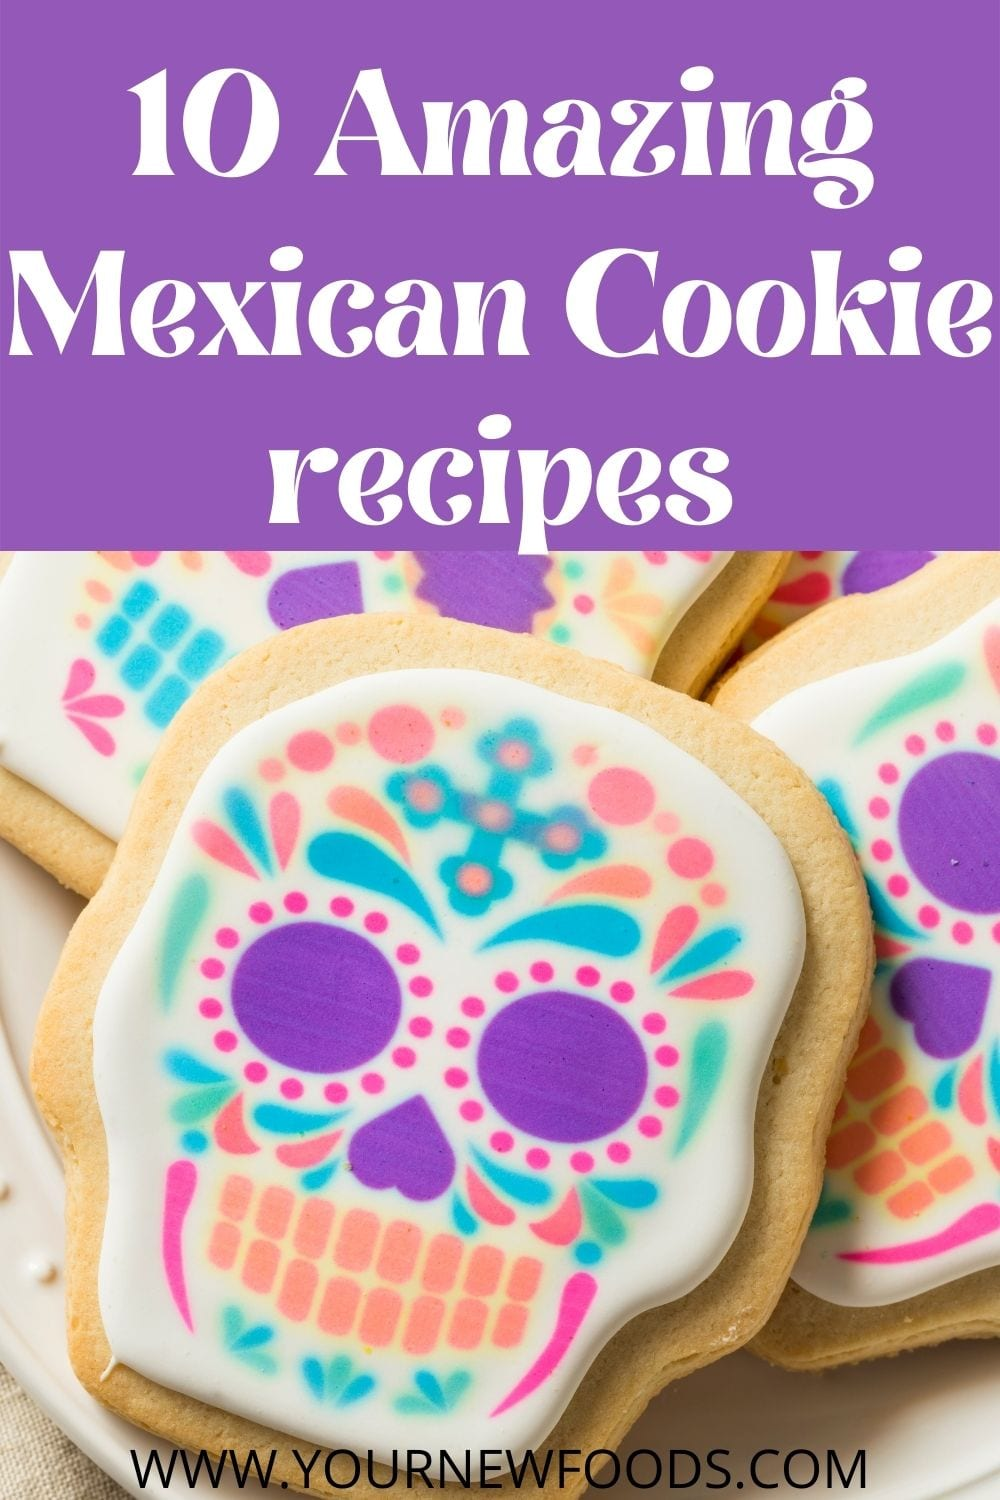 Mexican Cookie recipes